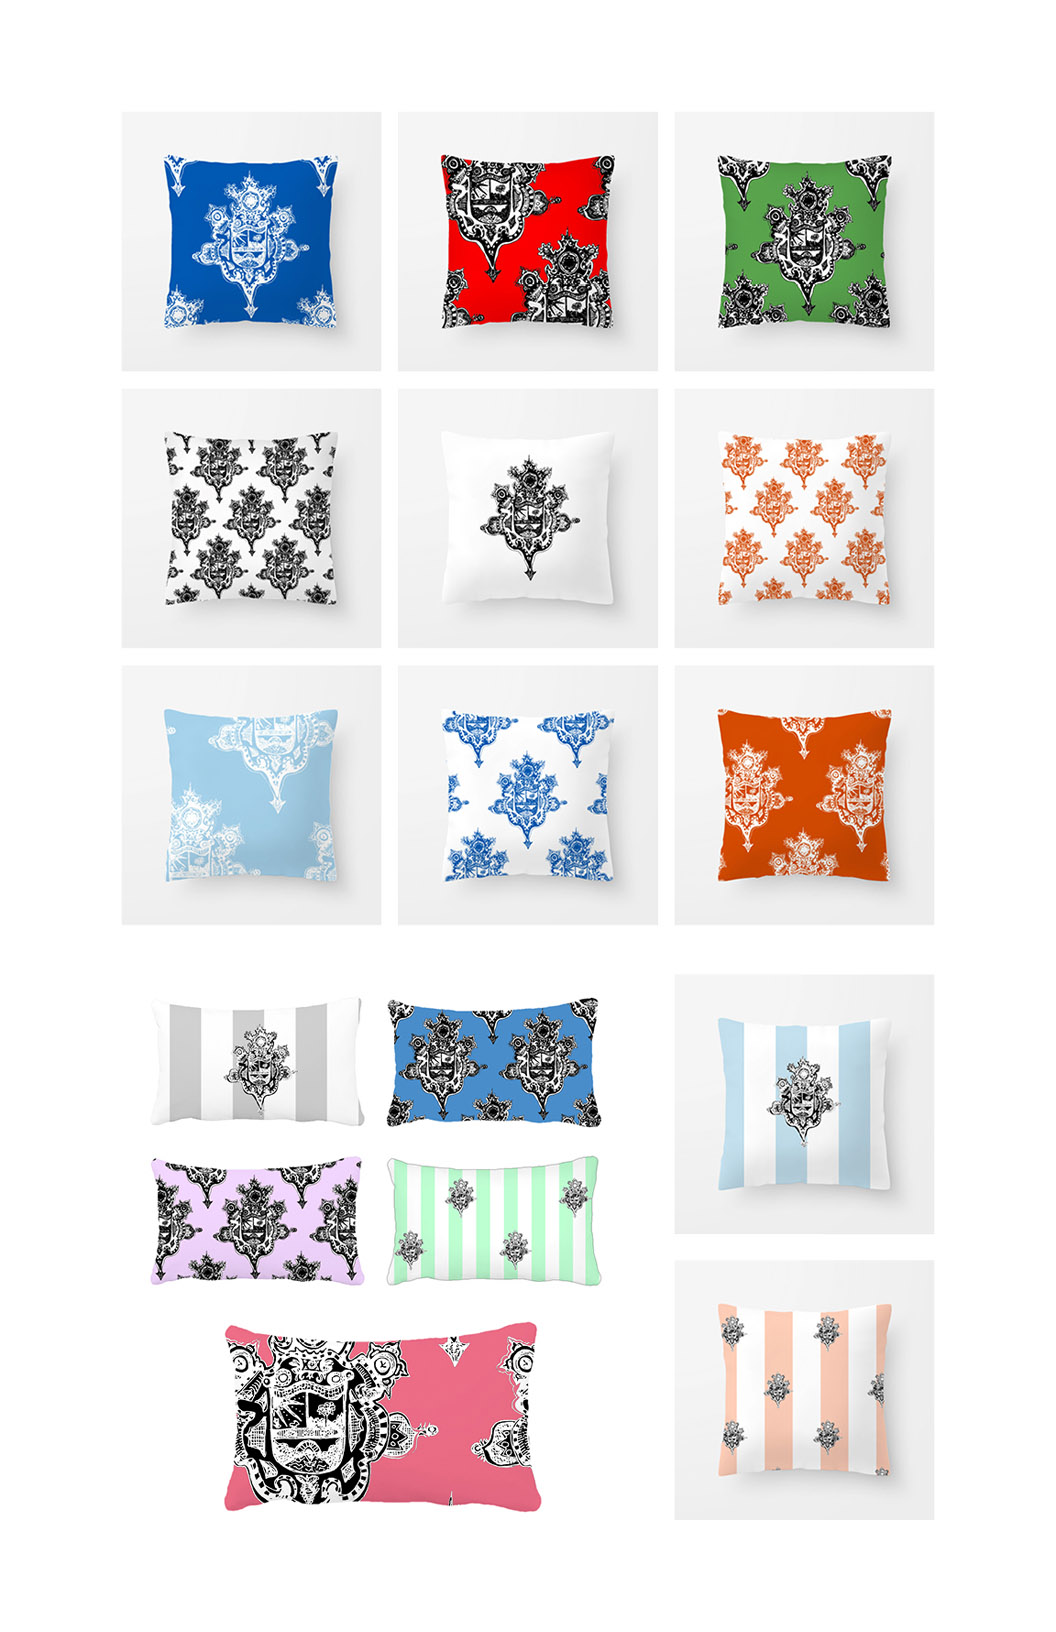 Crest pillow 11x17 sheet web v2.jpg